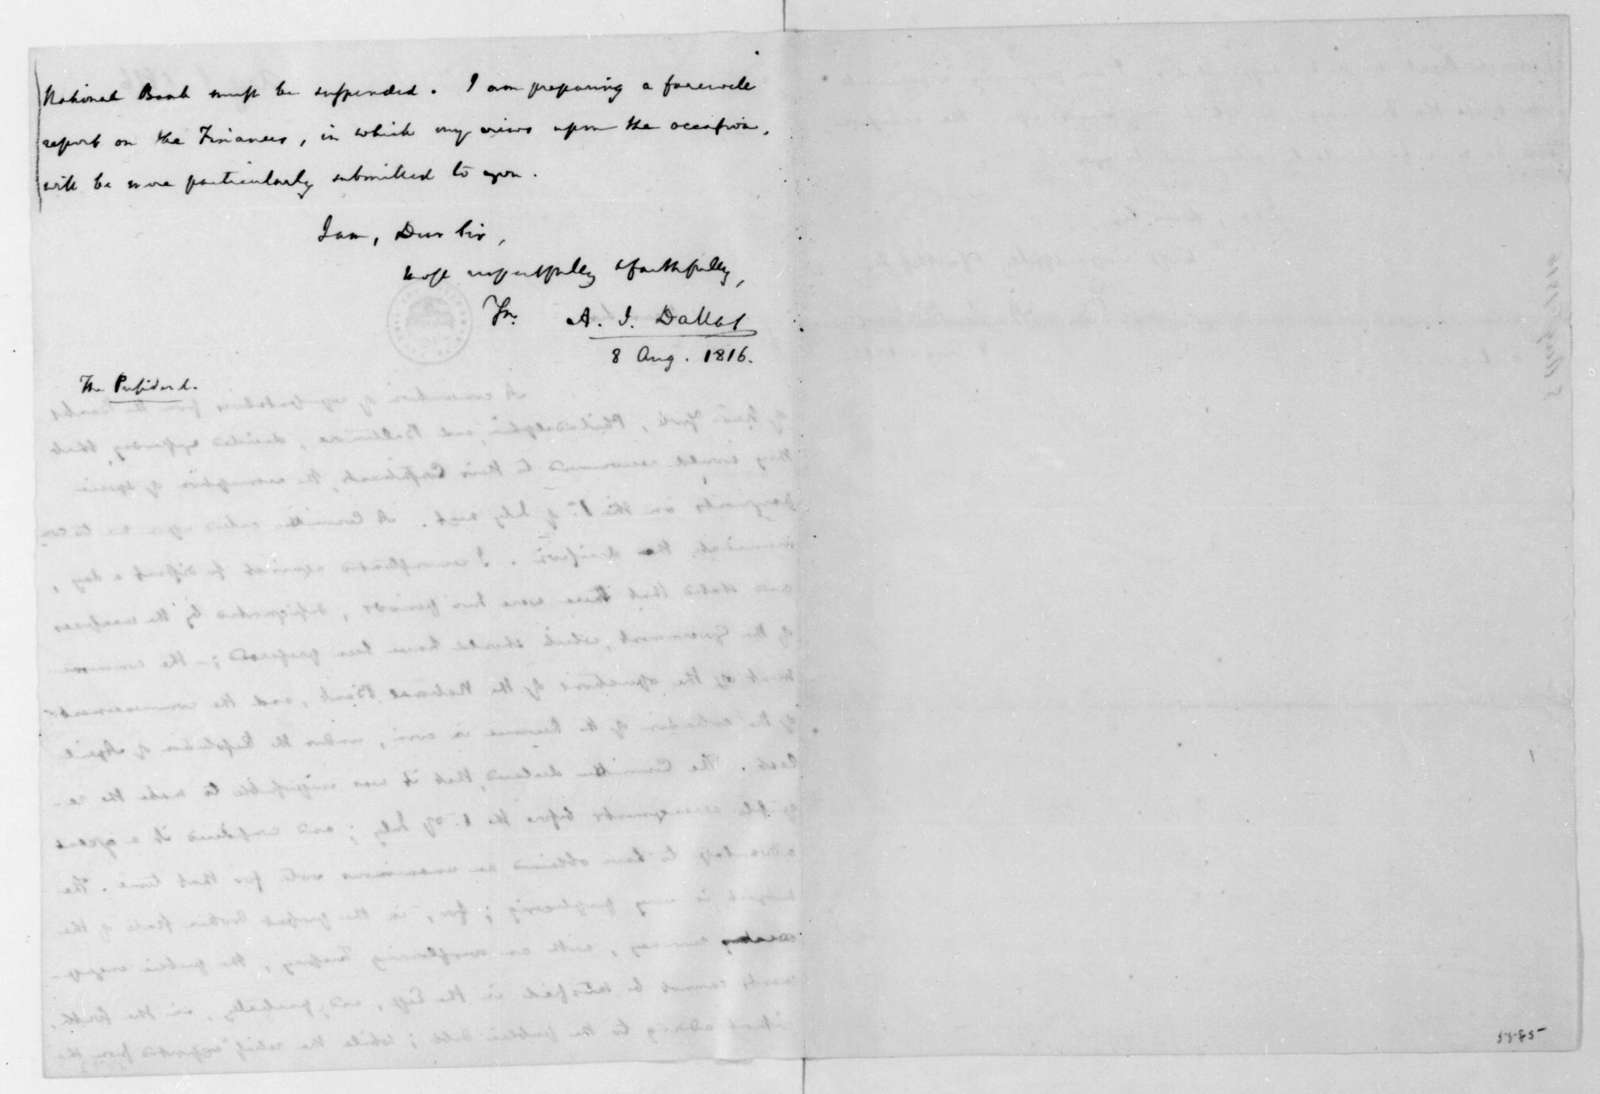 Alexander J. Dallas to James Madison, August 8, 1816.